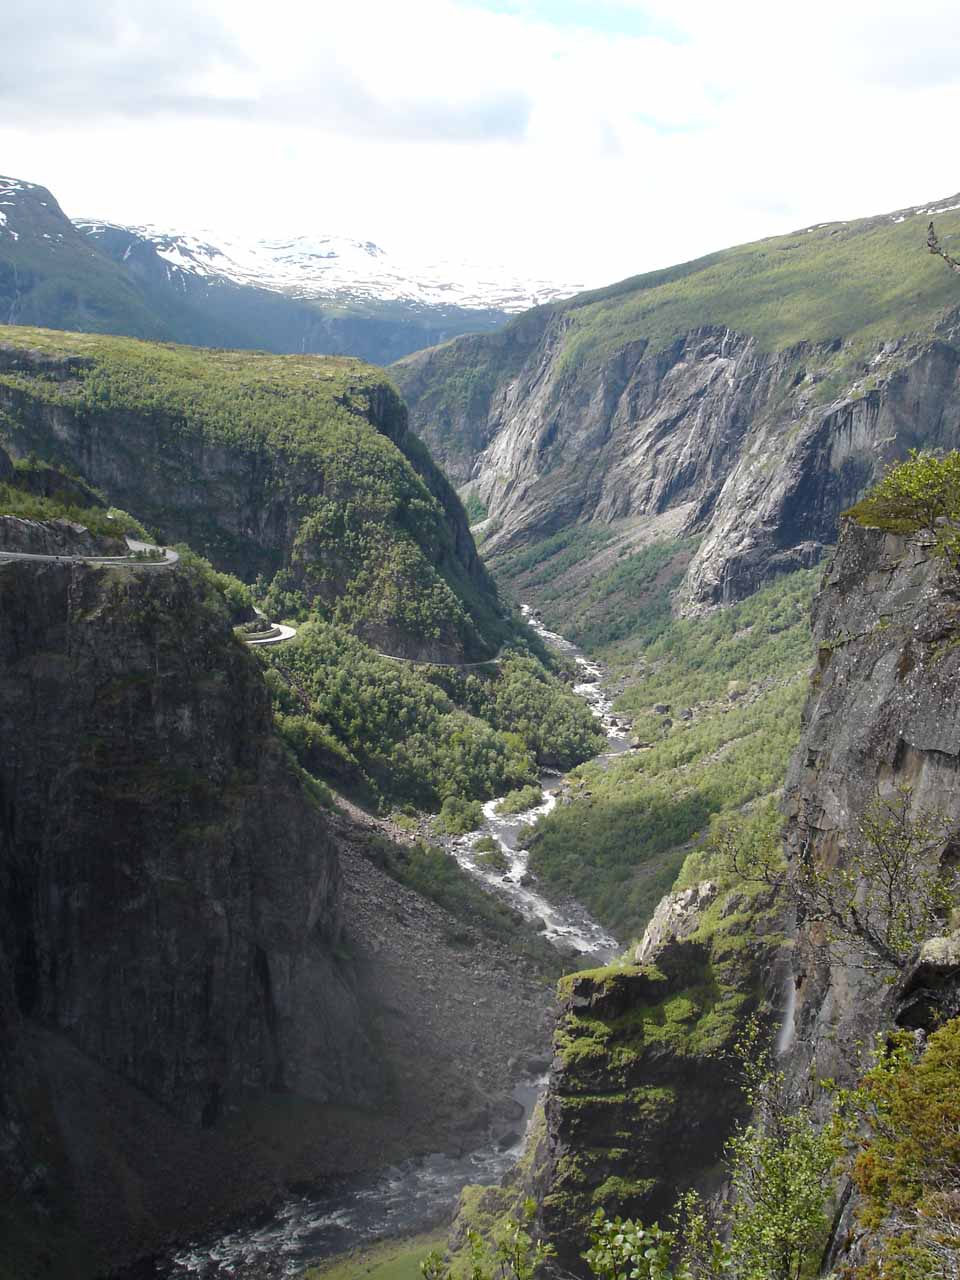 Looking downstream from the Fossli Hotel towards Måbødalen and the Bjoreia River